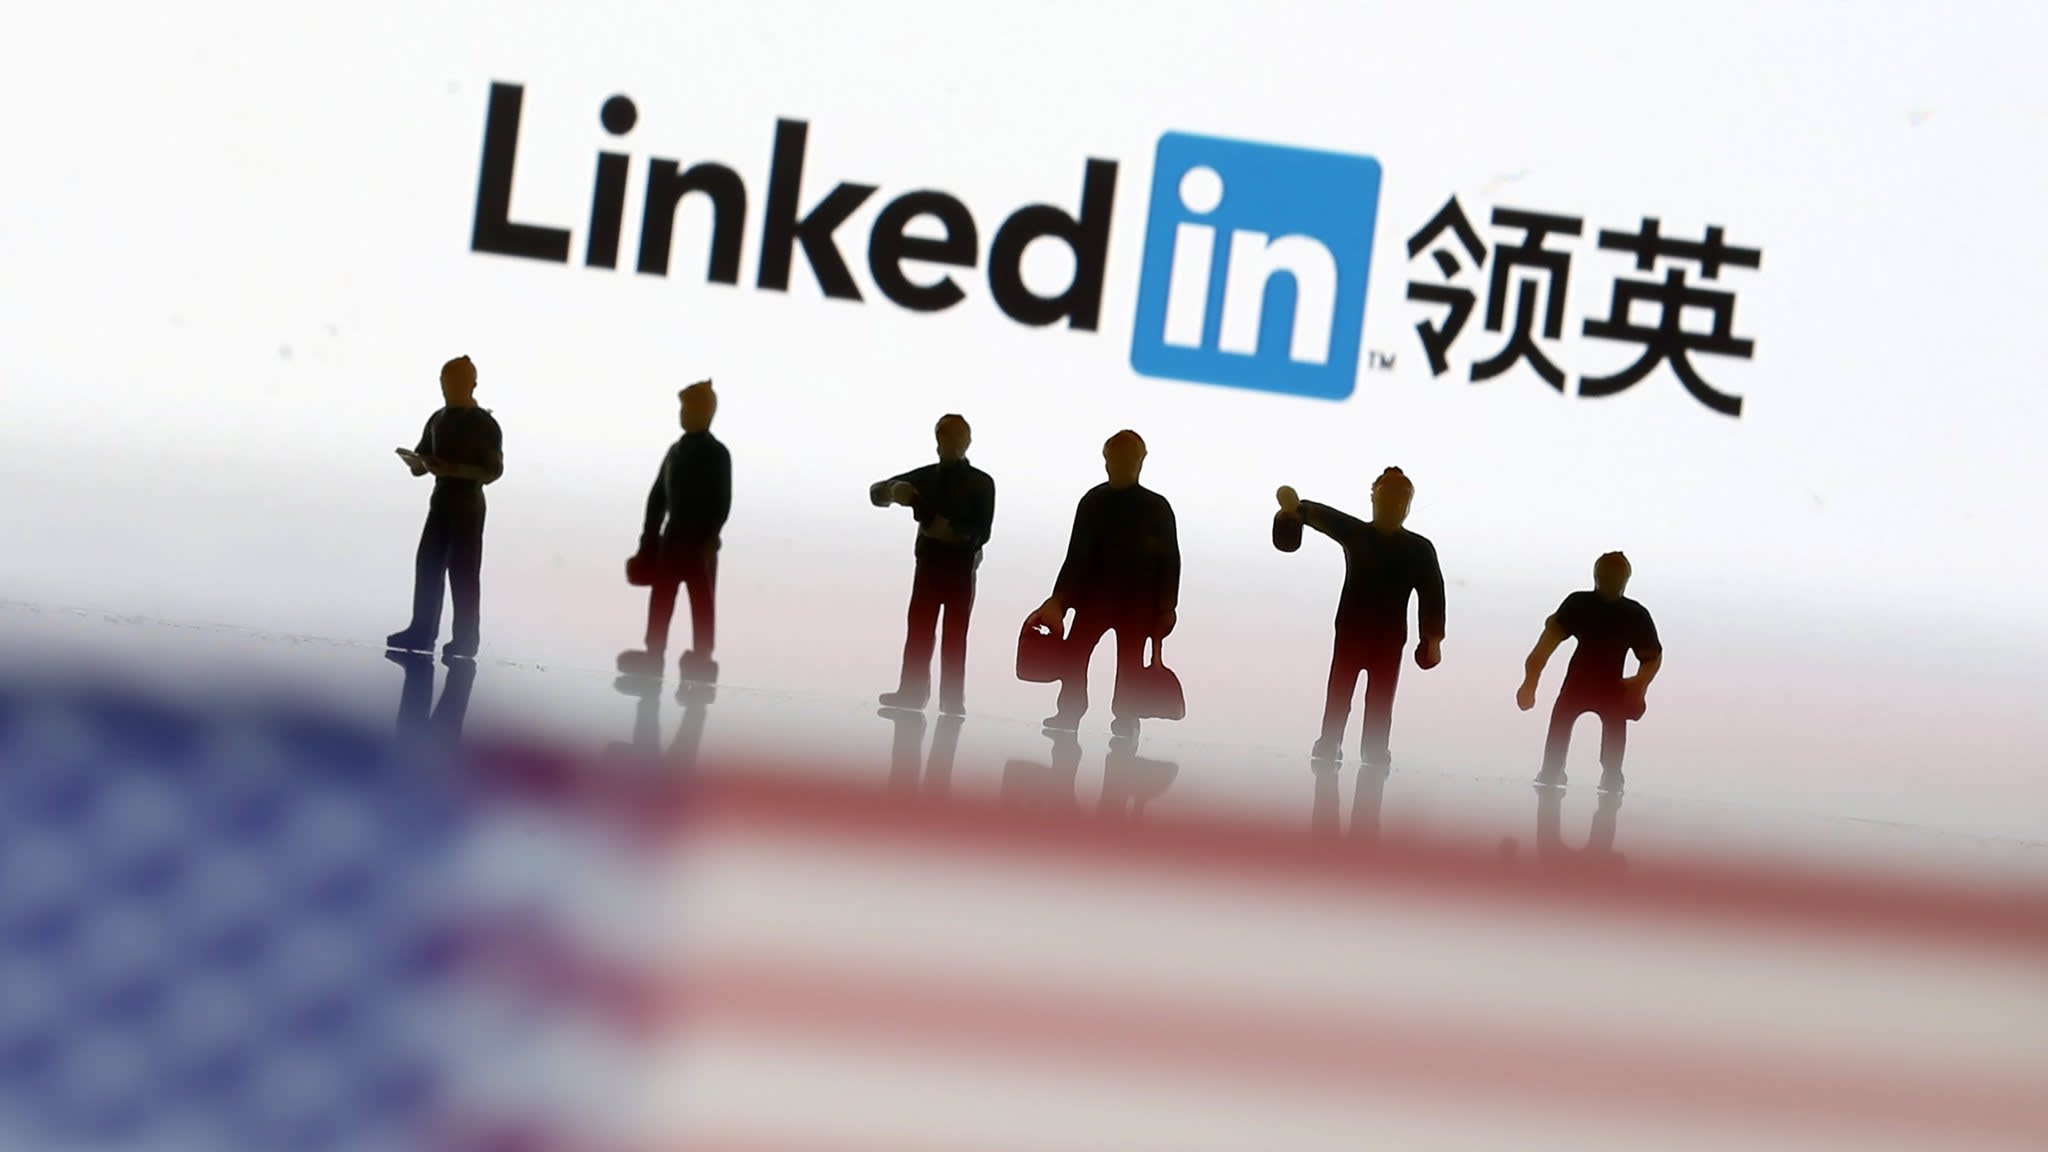 LinkedIn battles China's effort to recruit spies in US